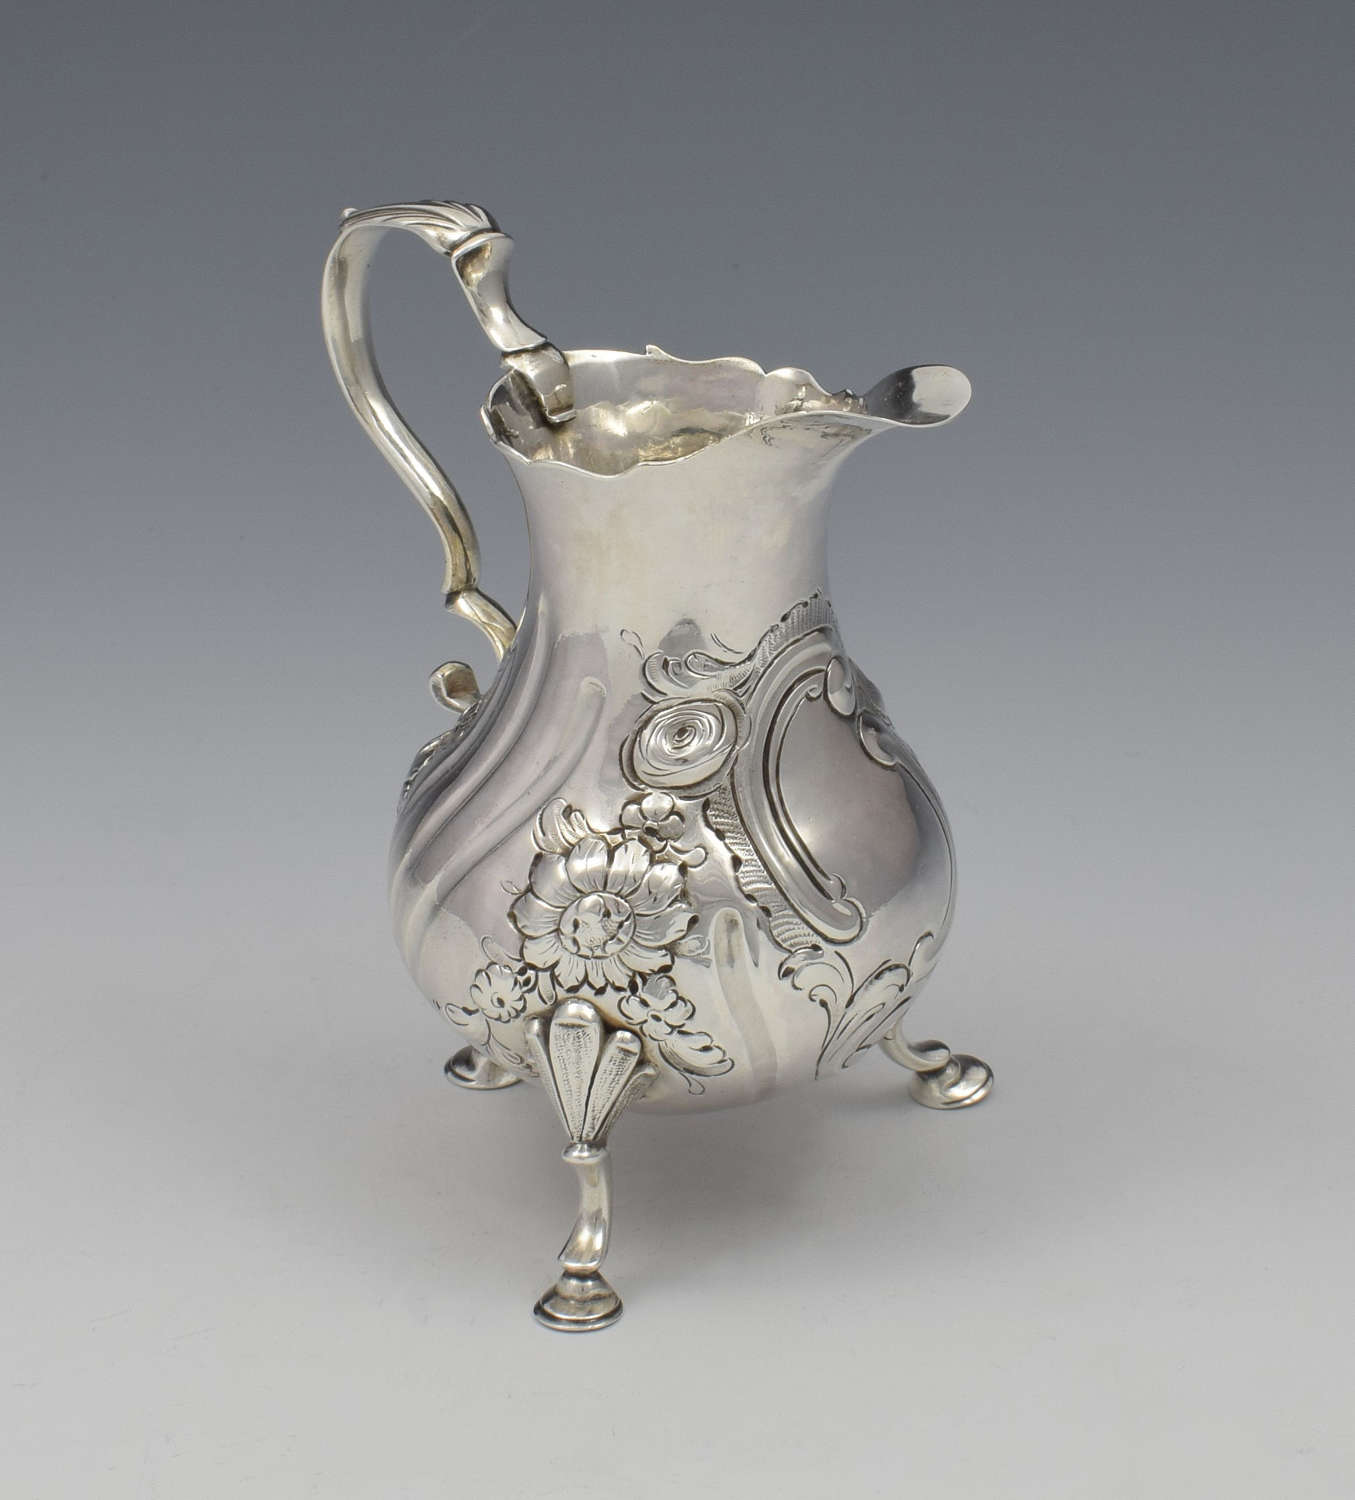 George II Silver Baluster Cream Jug David Hennell I